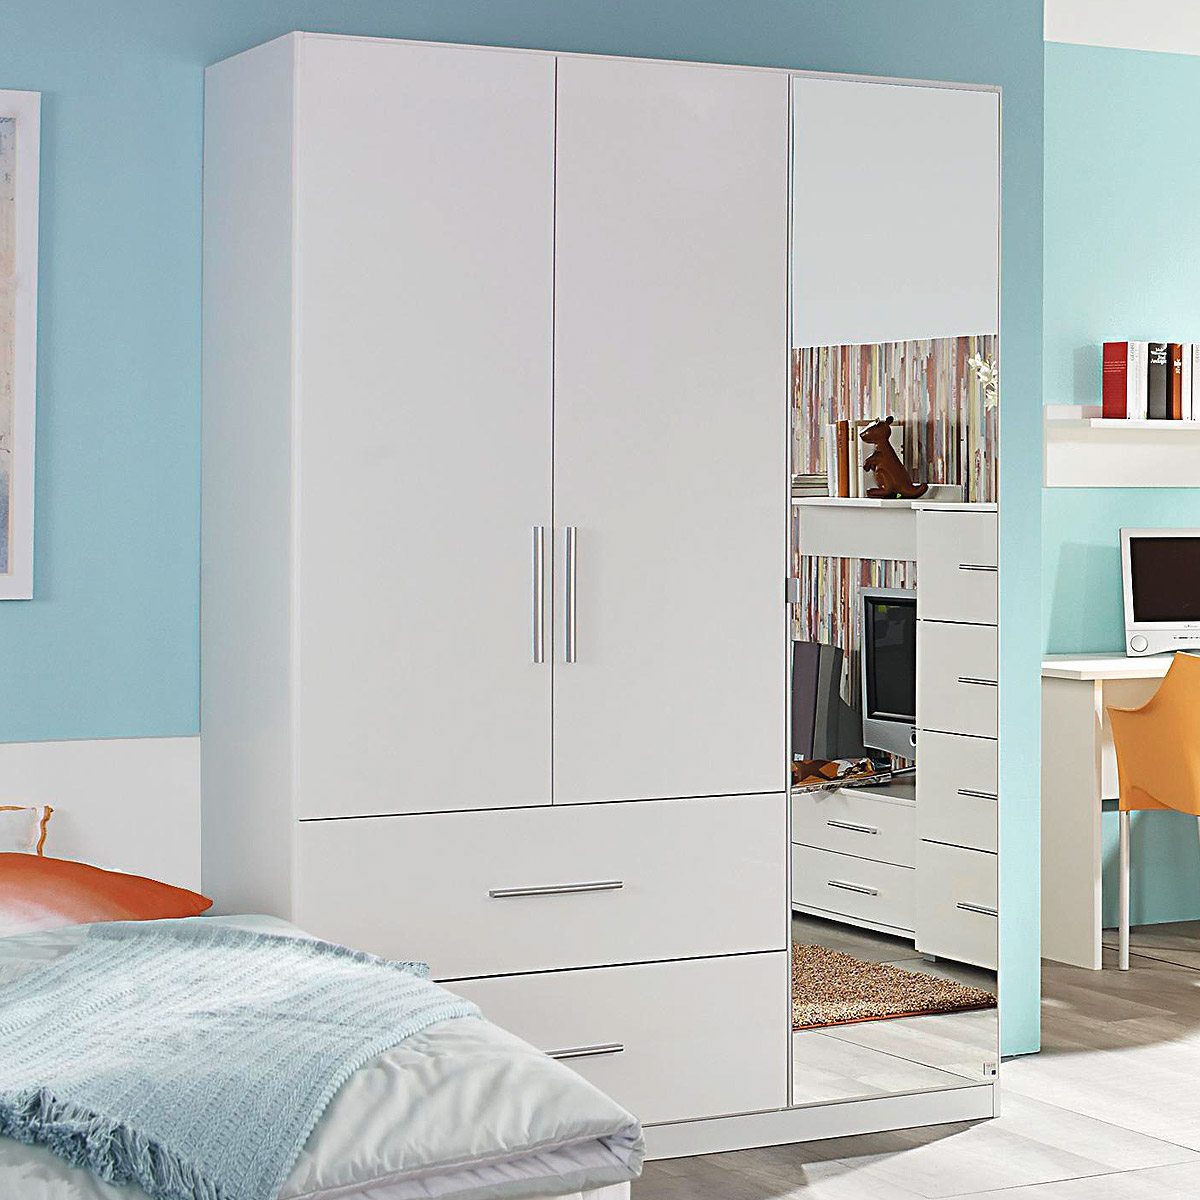 kleiderschrank manja kinderzimmer jugendzimmer wei hochglanz b 136 cm. Black Bedroom Furniture Sets. Home Design Ideas